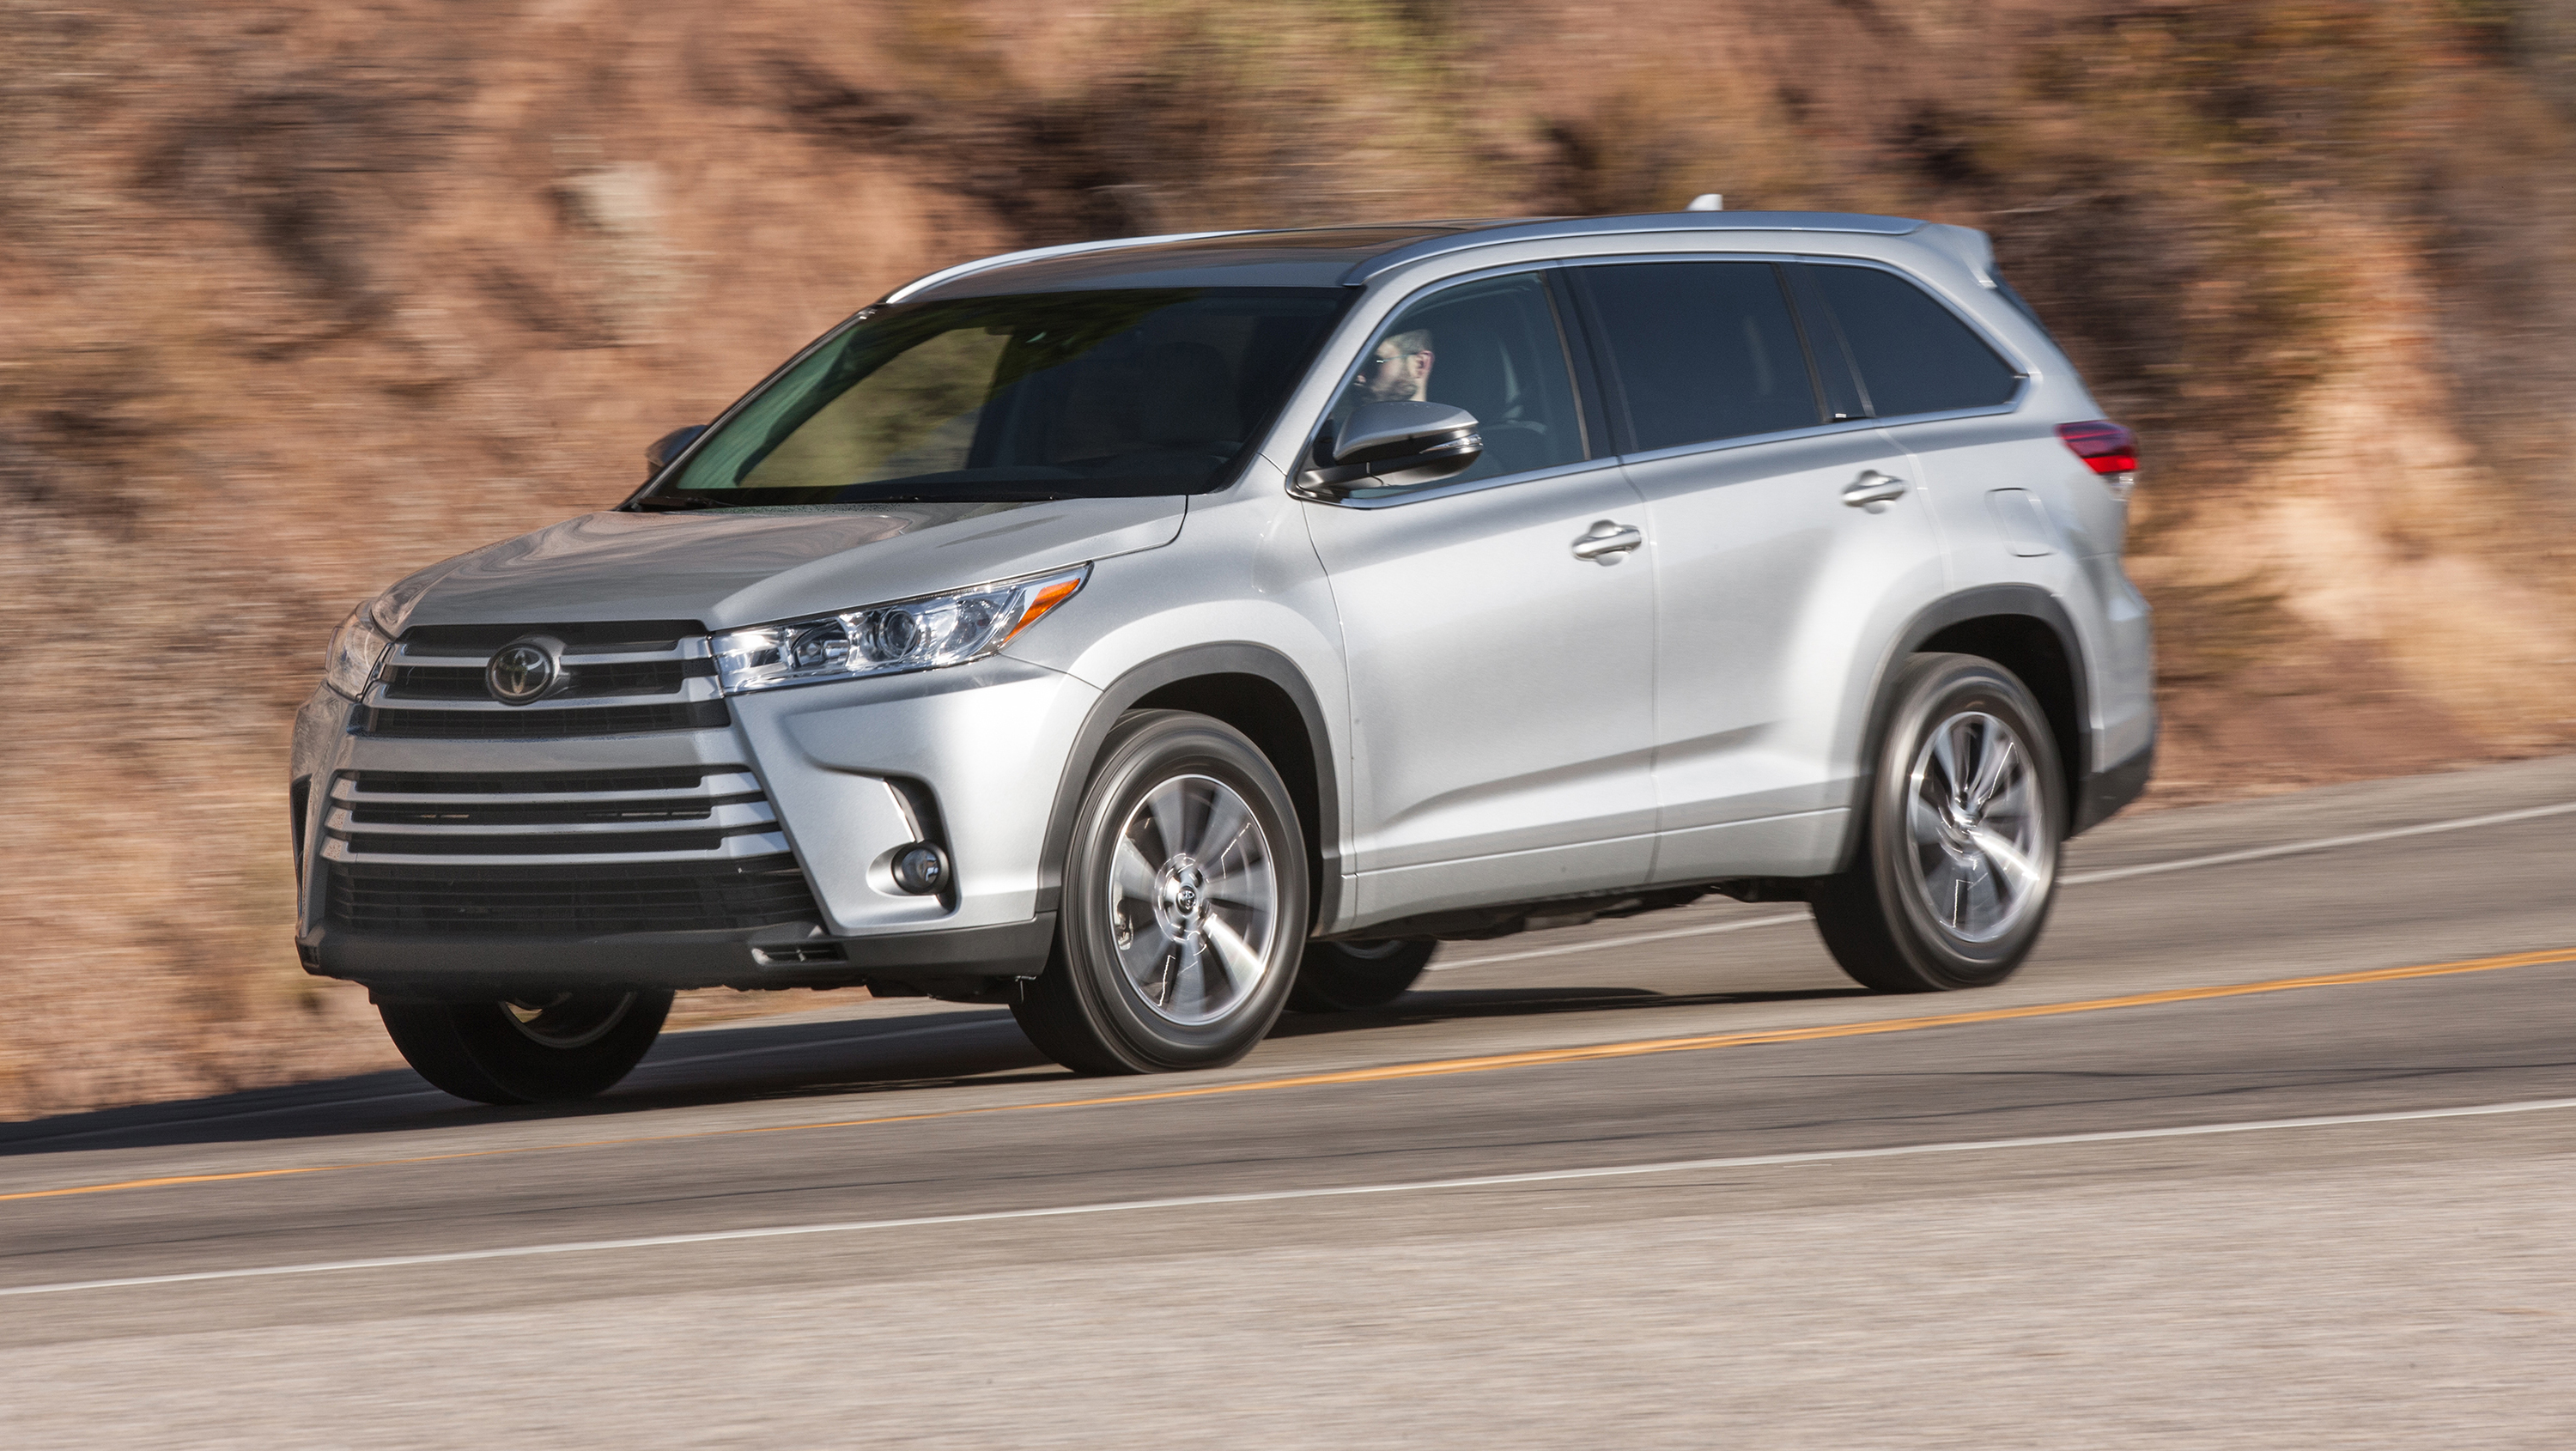 2017 Toyota Highlander Pictures | Photo Gallery | Car and ...